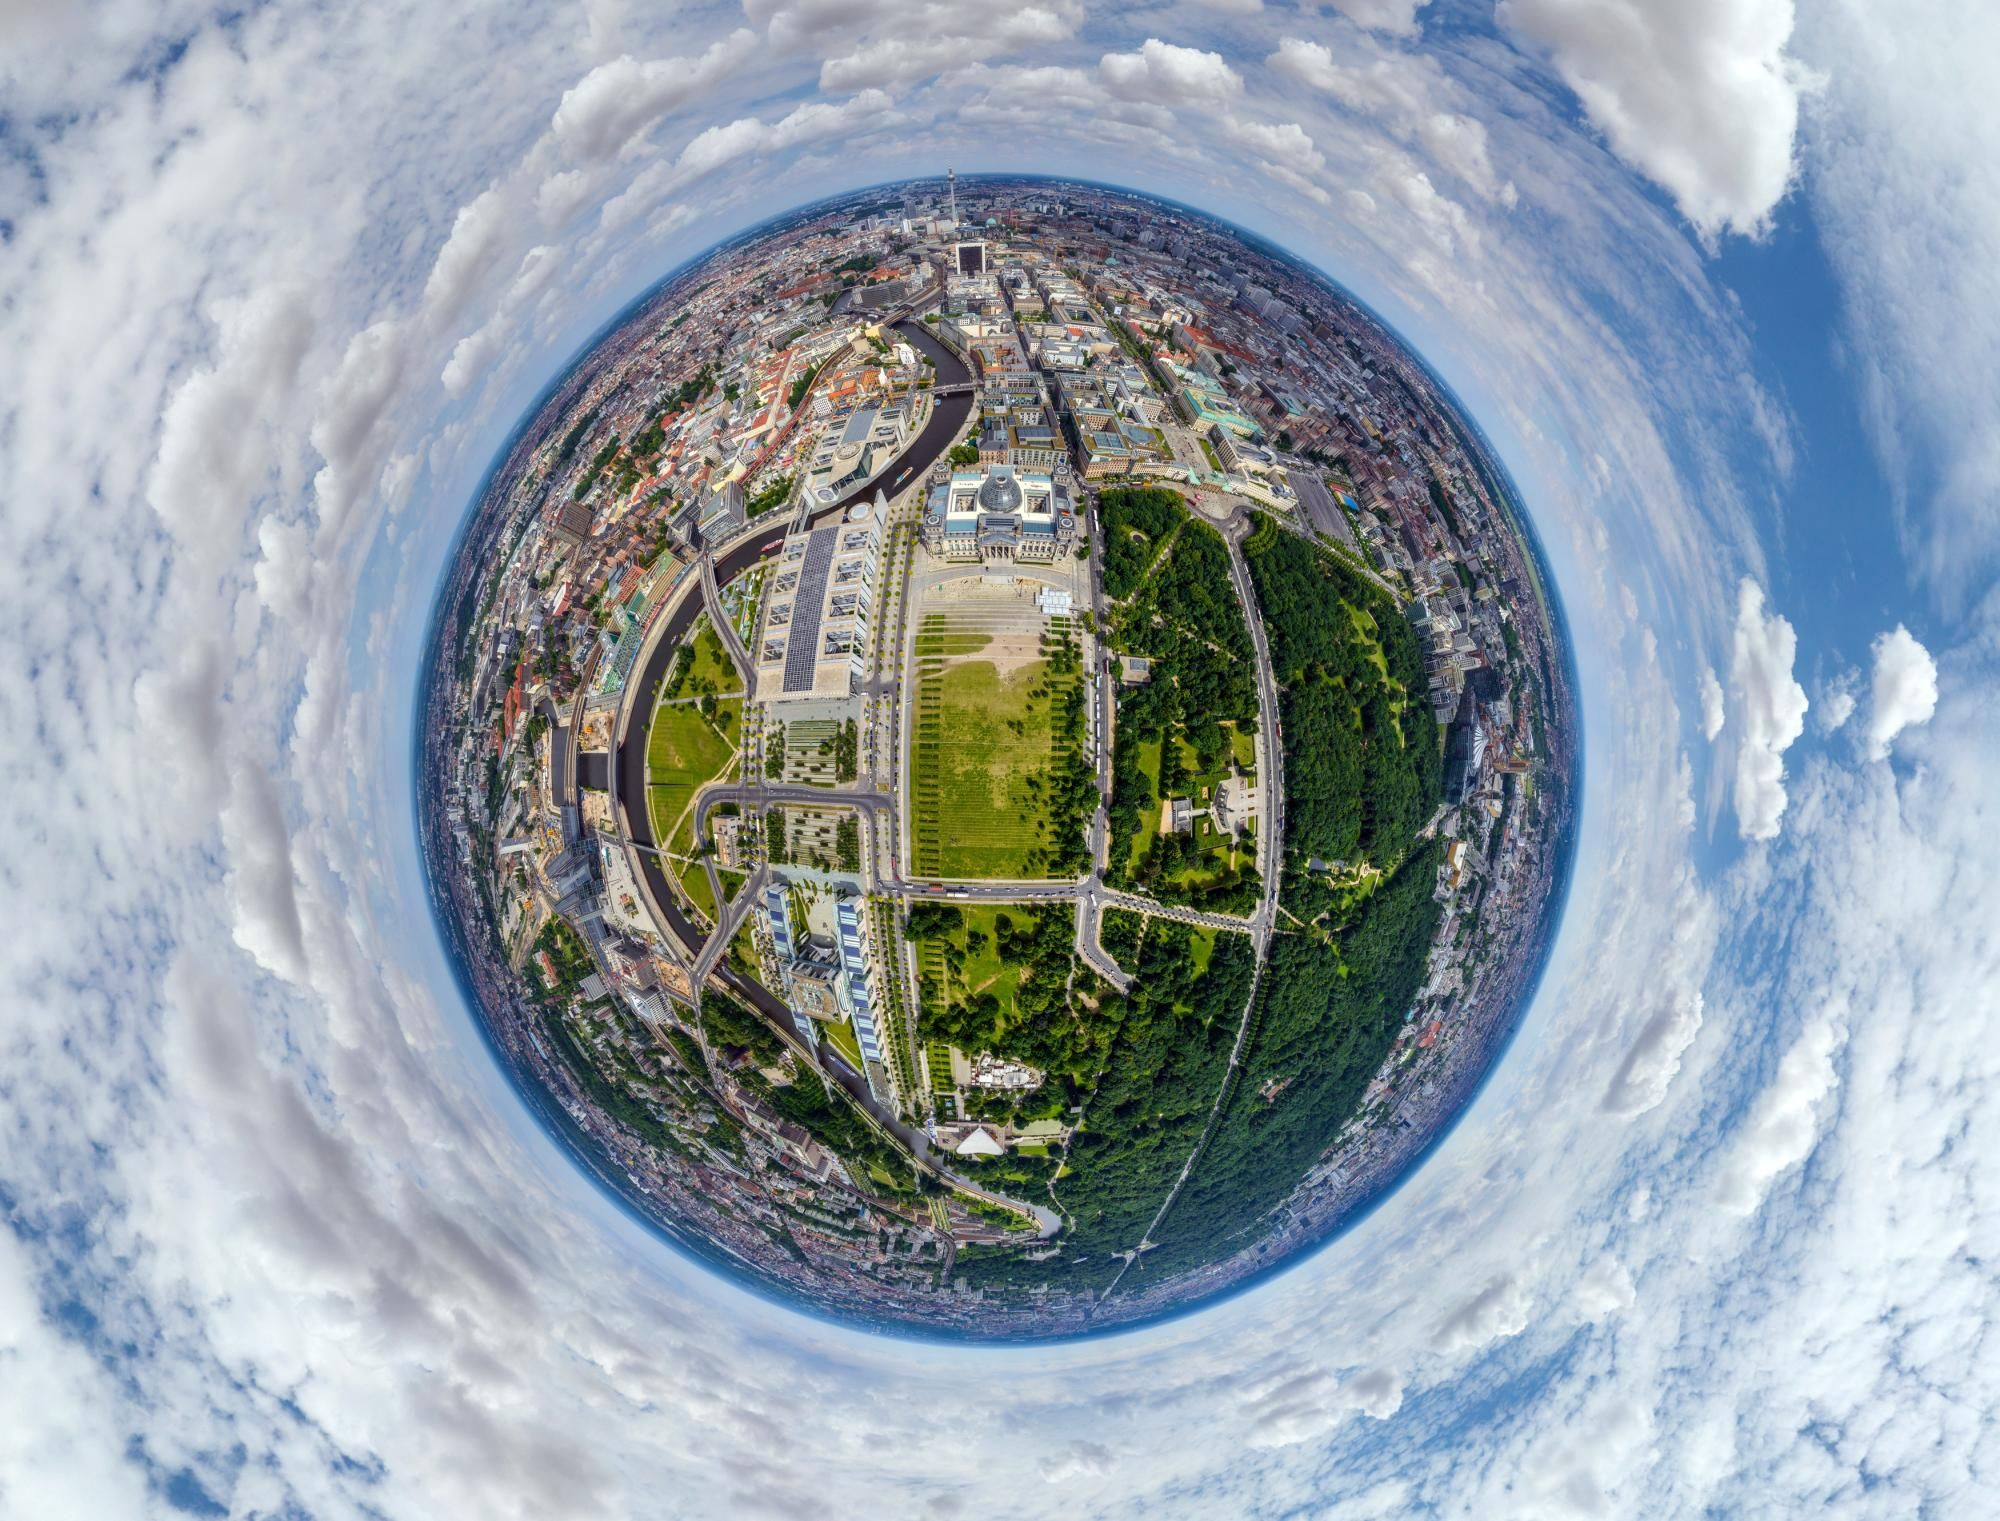 World city panoramas transformed into 360-degree globes – in